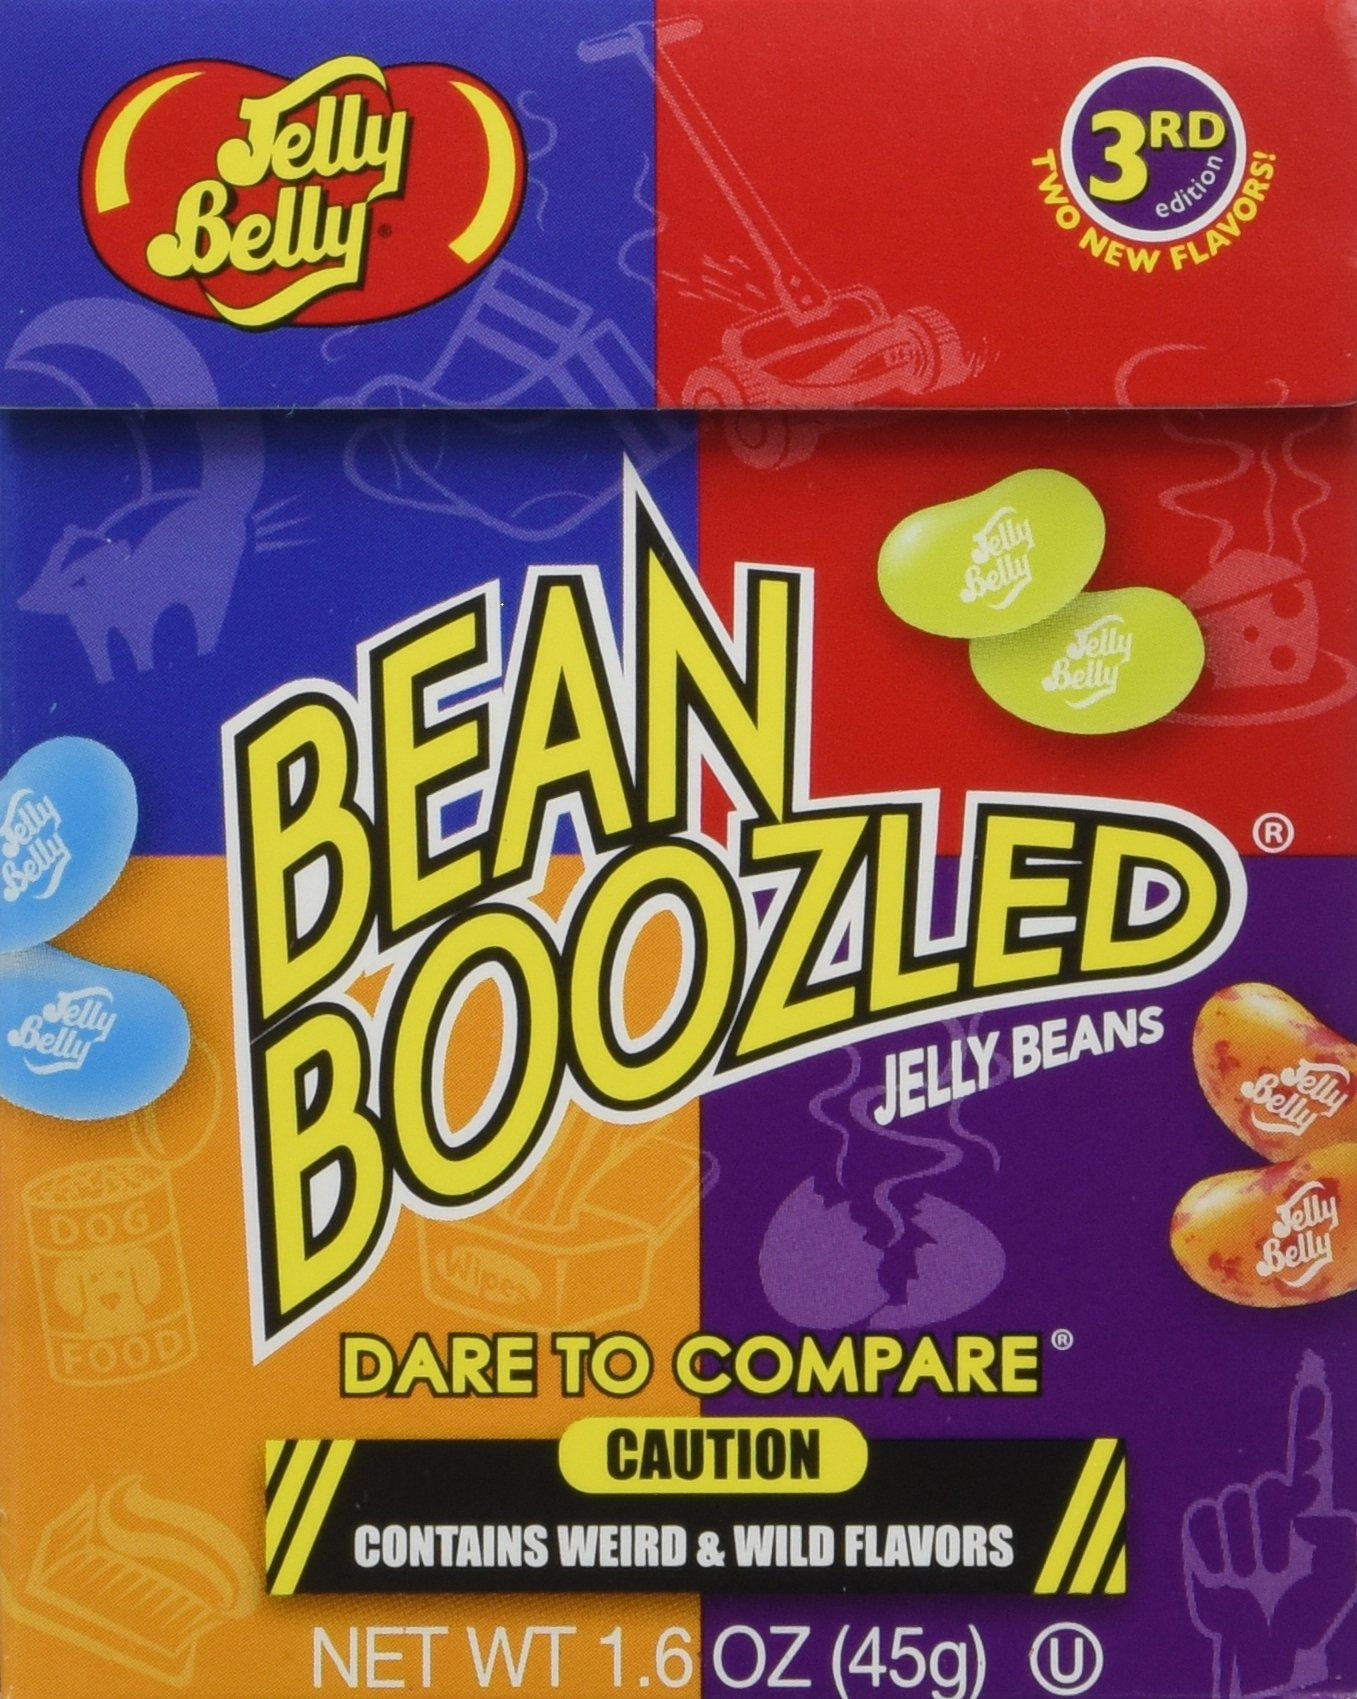 Jelly Belly BeanBoozled Jelly Beans 3rd Edition (4-Packs) NEW Flavors Stinky Socks and Lawn Clippings